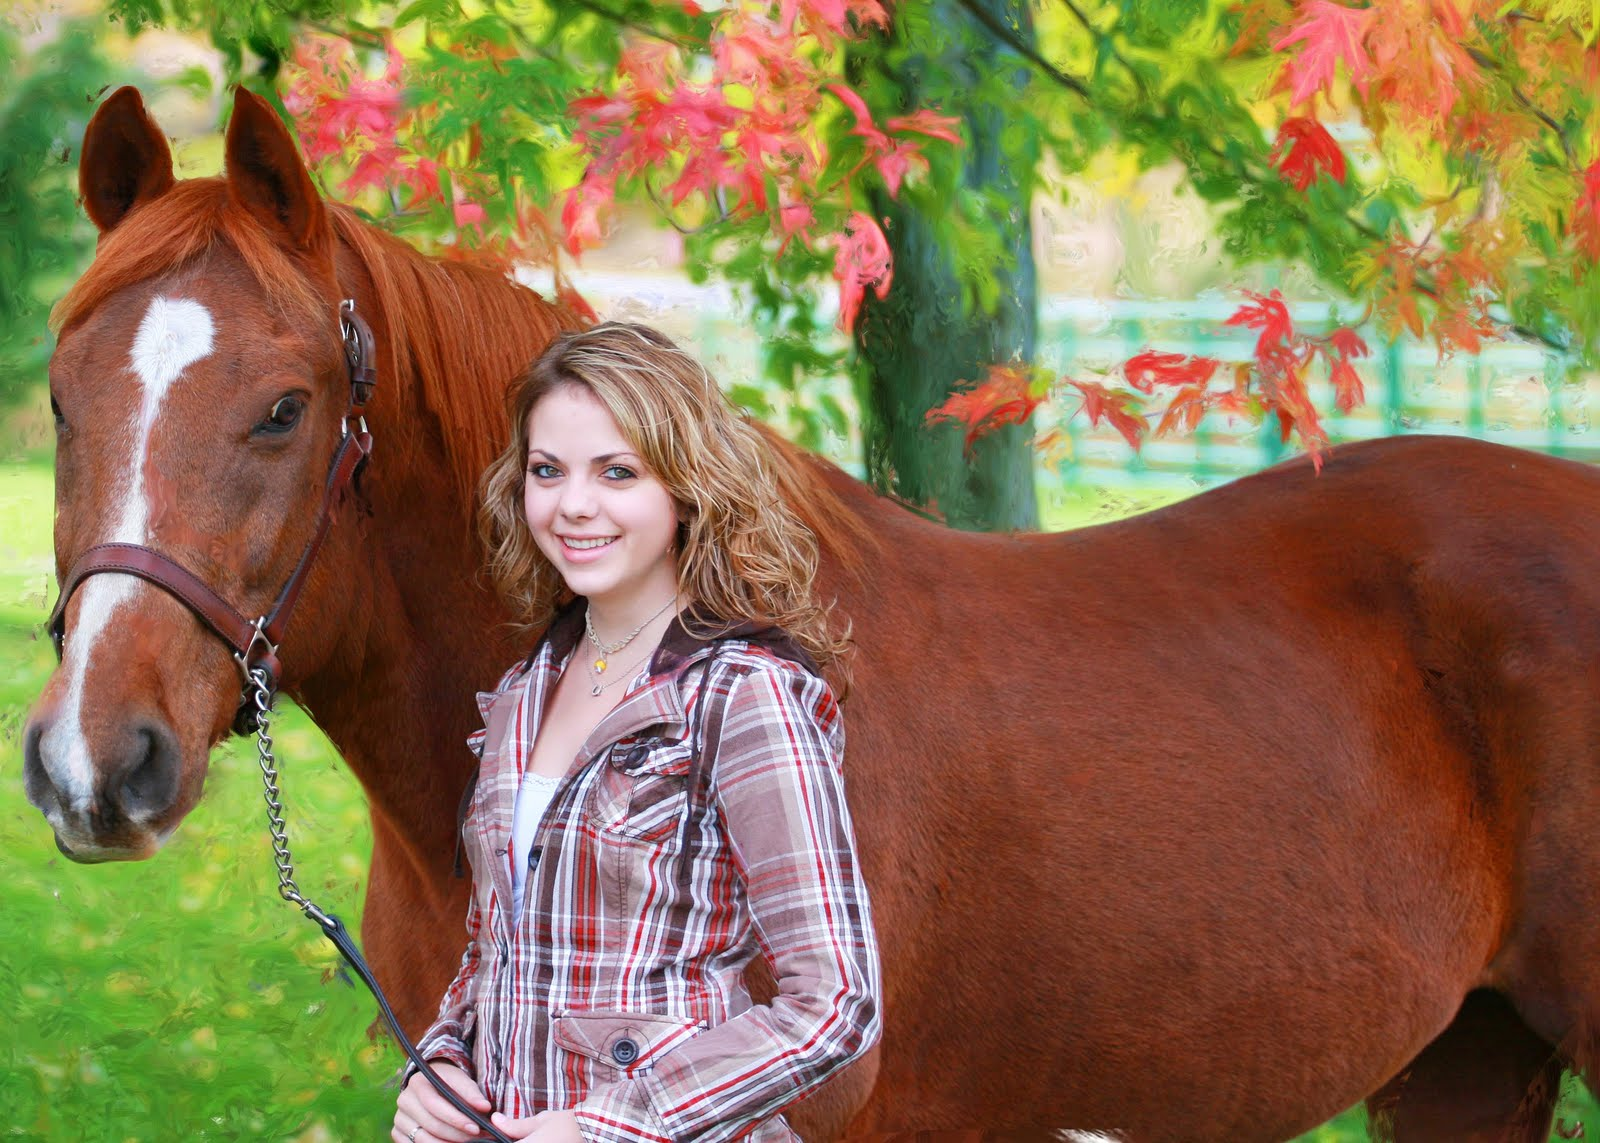 Senior Picture Girl With Horse